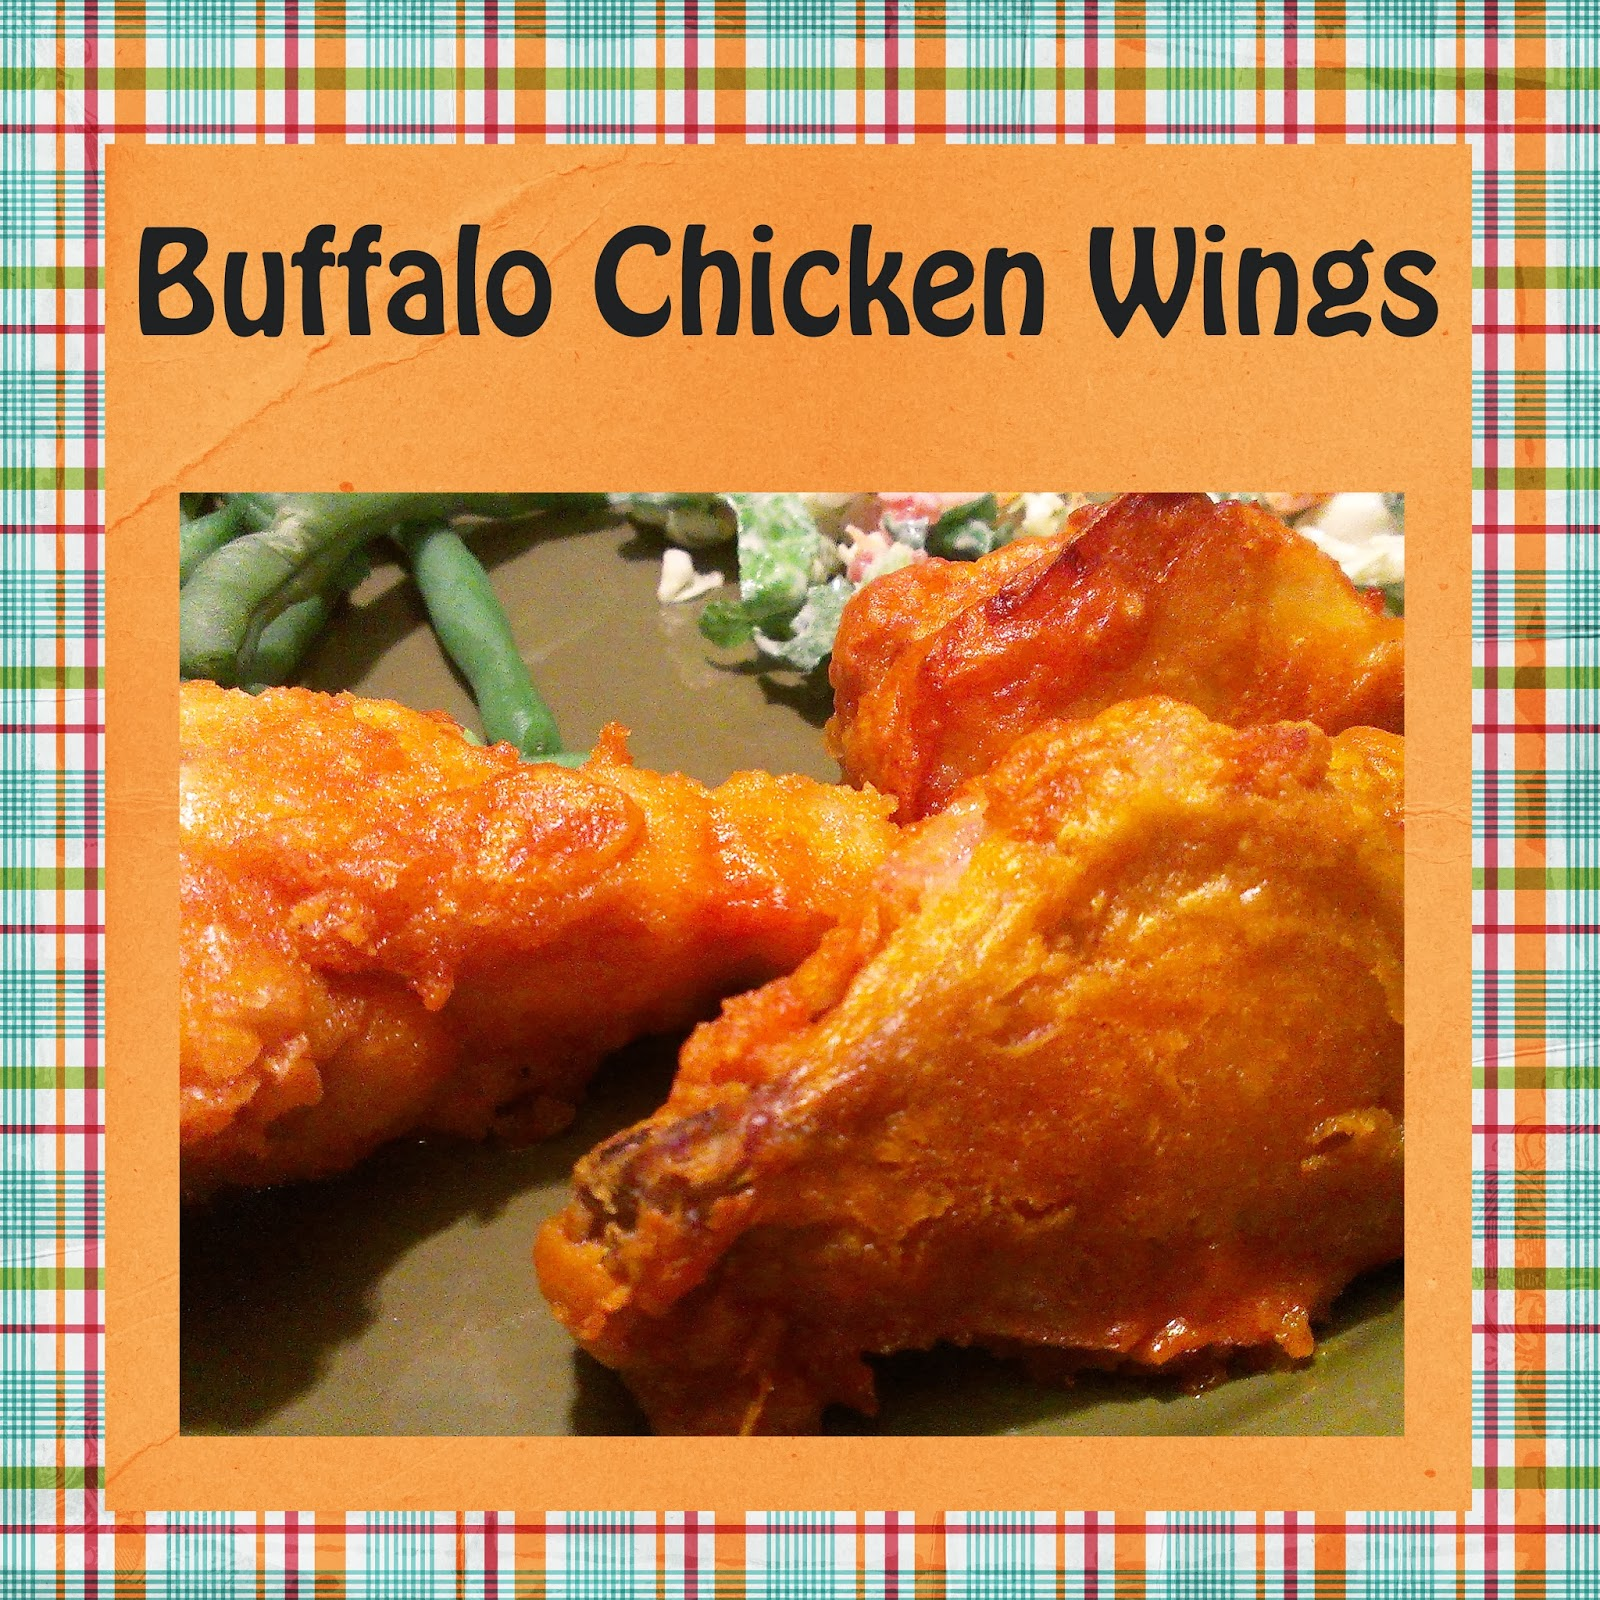 http://gloriouslymade.blogspot.com/2013/11/buffalo-chicken-wings.html